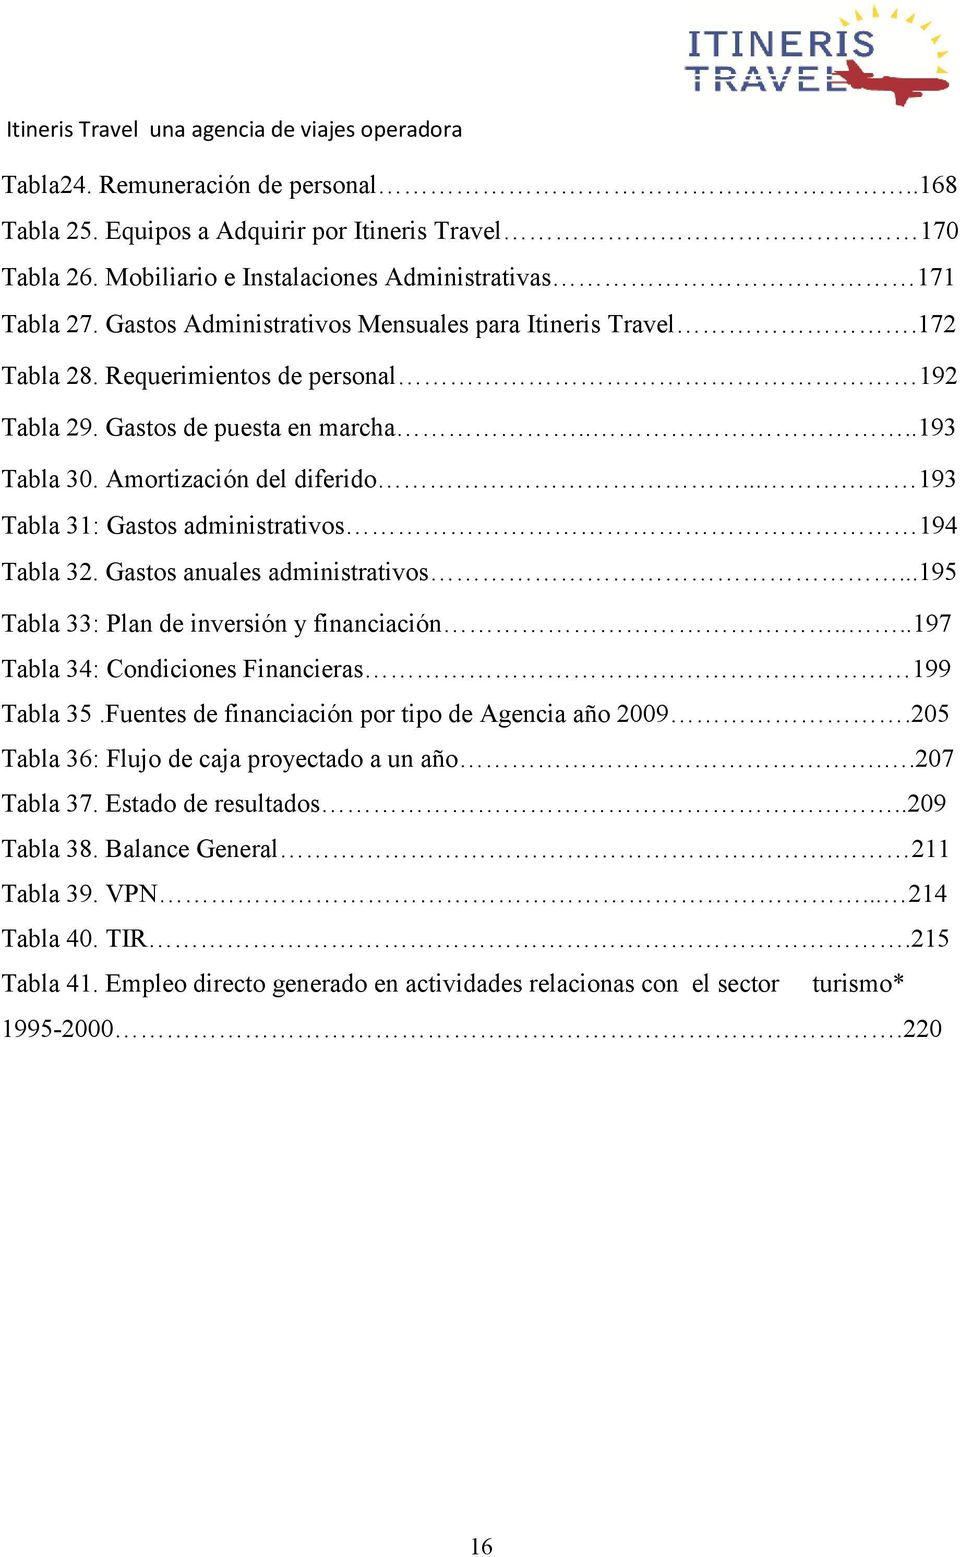 .. 193 Tabla 31: Gastos administrativos 194 Tabla 32. Gastos anuales administrativos...195 Tabla 33: Plan de inversión y financiación....197 Tabla 34: Condiciones Financieras 199 Tabla 35.